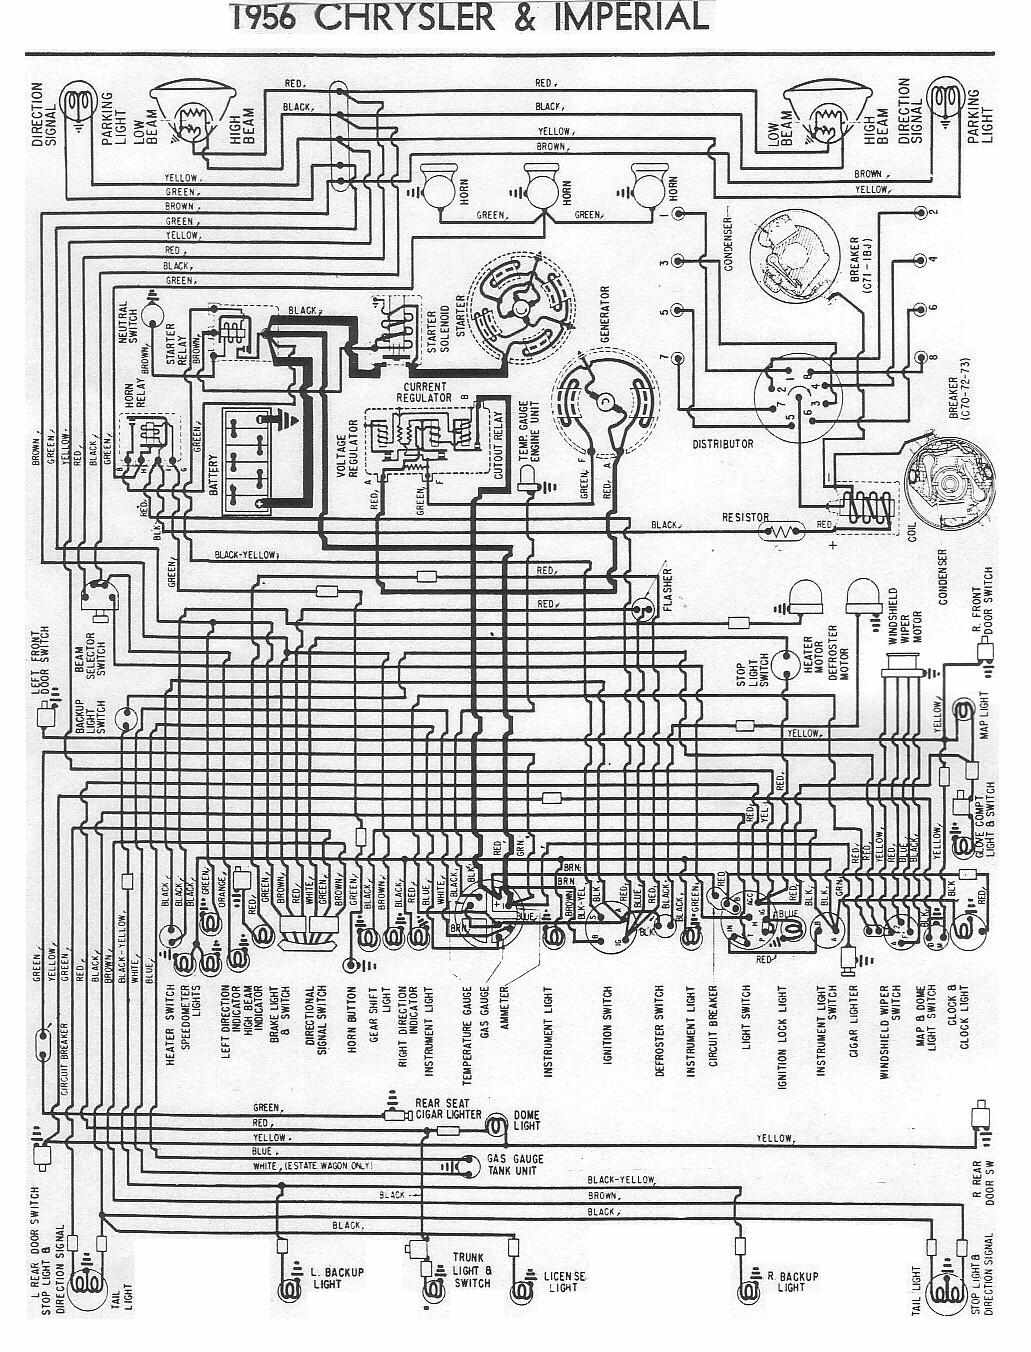 Electrical Wiring Diagrams Of Chrysler And Imperial on Headlight Relay Schematic